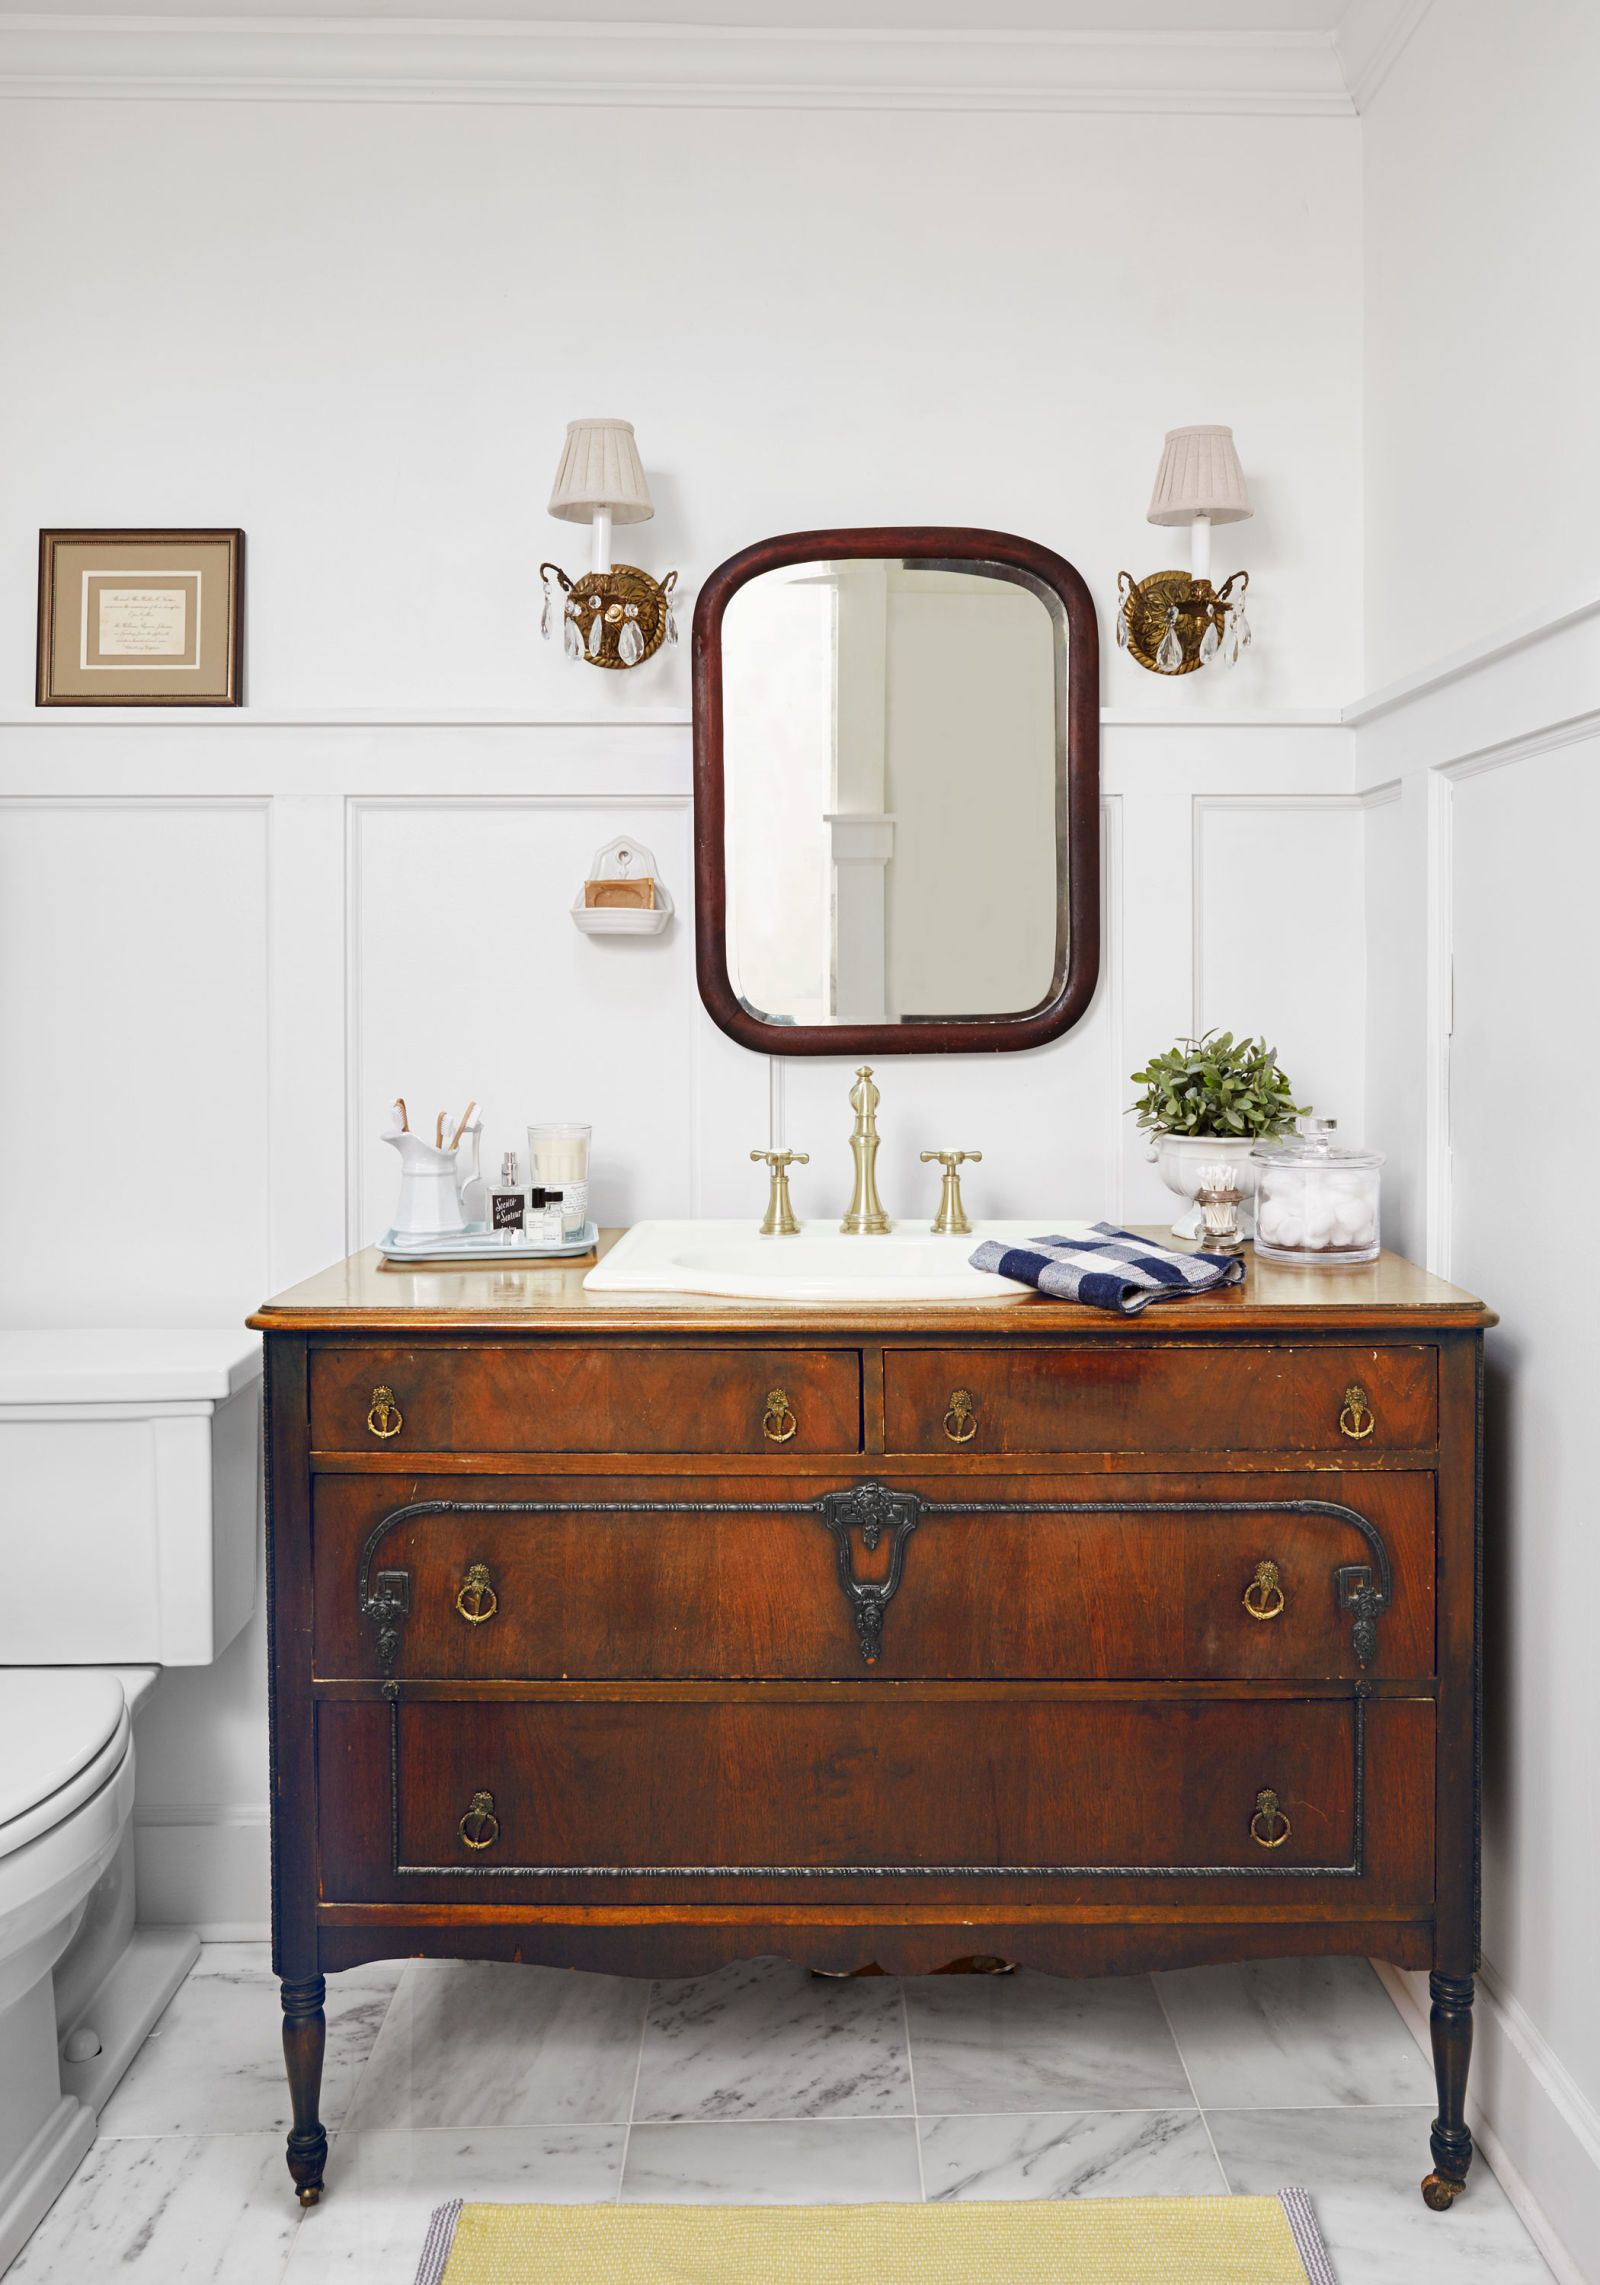 Even Diy Skeptics Will Be Inspired By This Cape Cod Home Makeover Bathroom Inspiration Bathrooms Remodel Vintage Bathroom